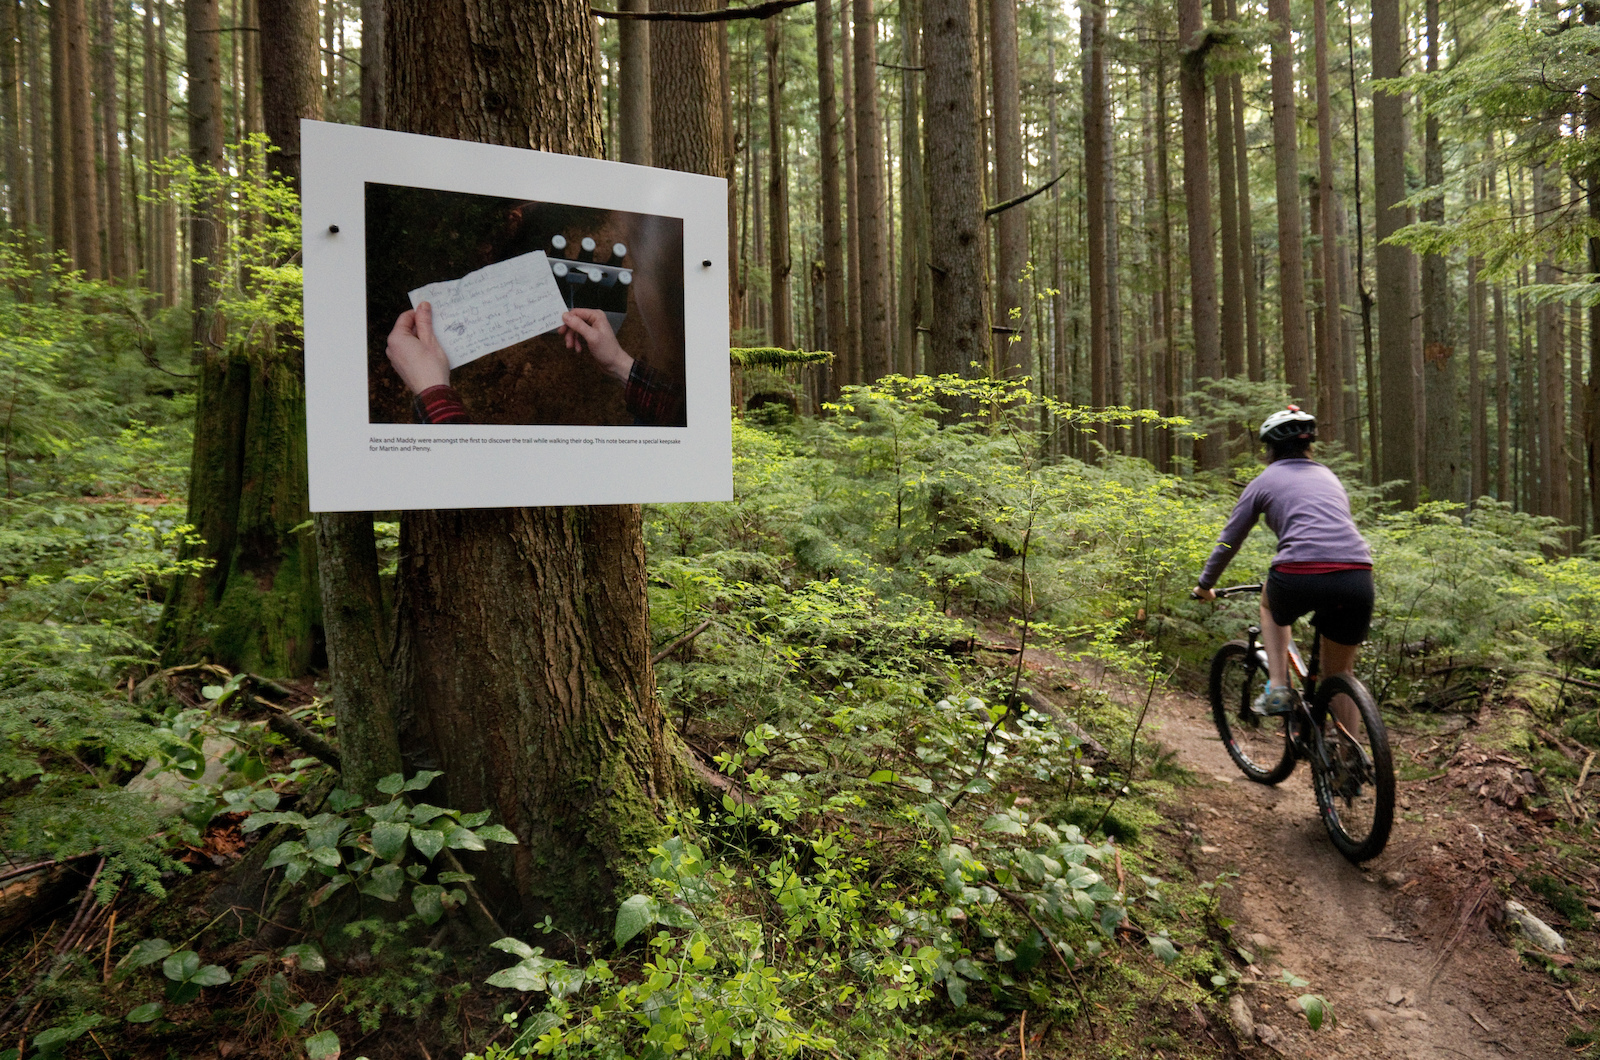 A rider passes one of the prints in the installation.